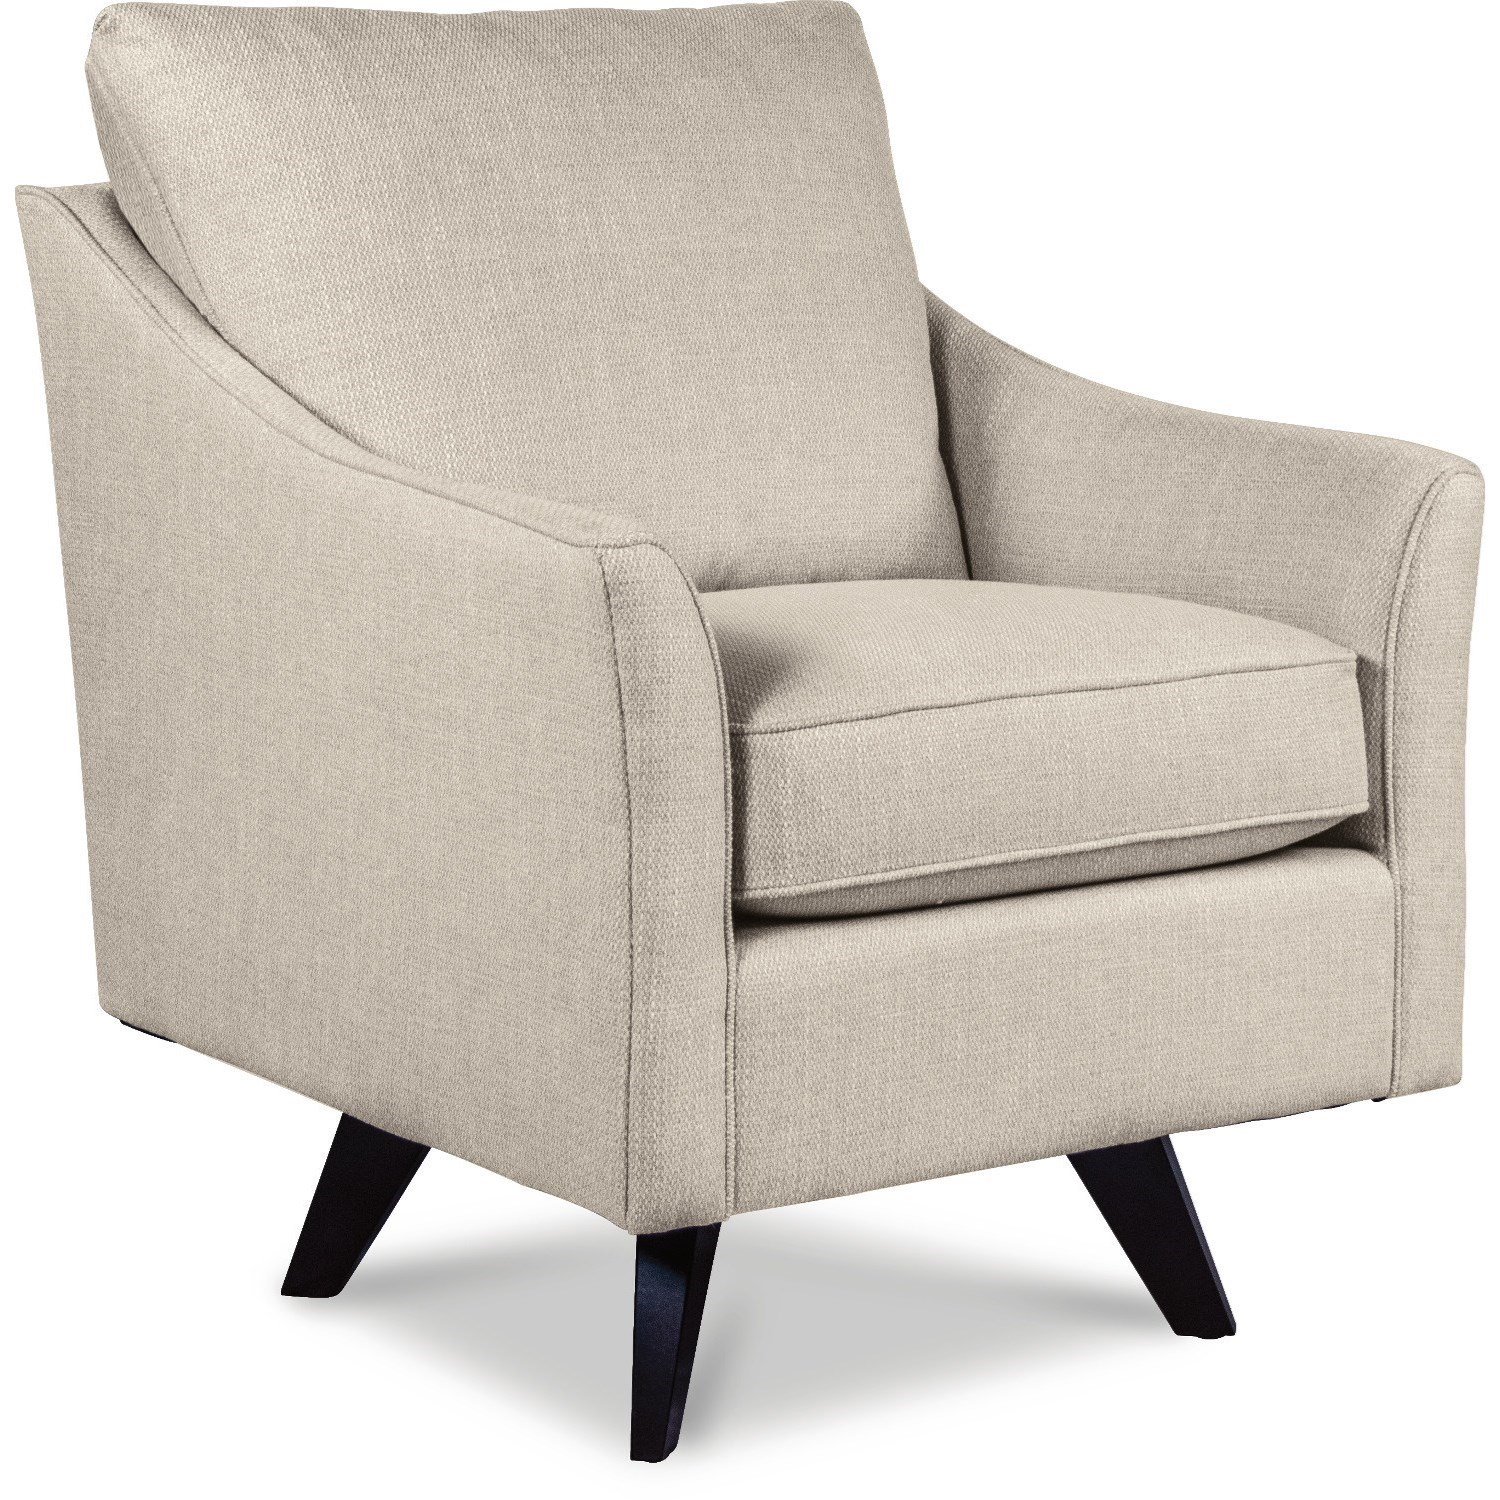 Chairs Reegan Swivel Occasional Chair by La-Z-Boy at SuperStore